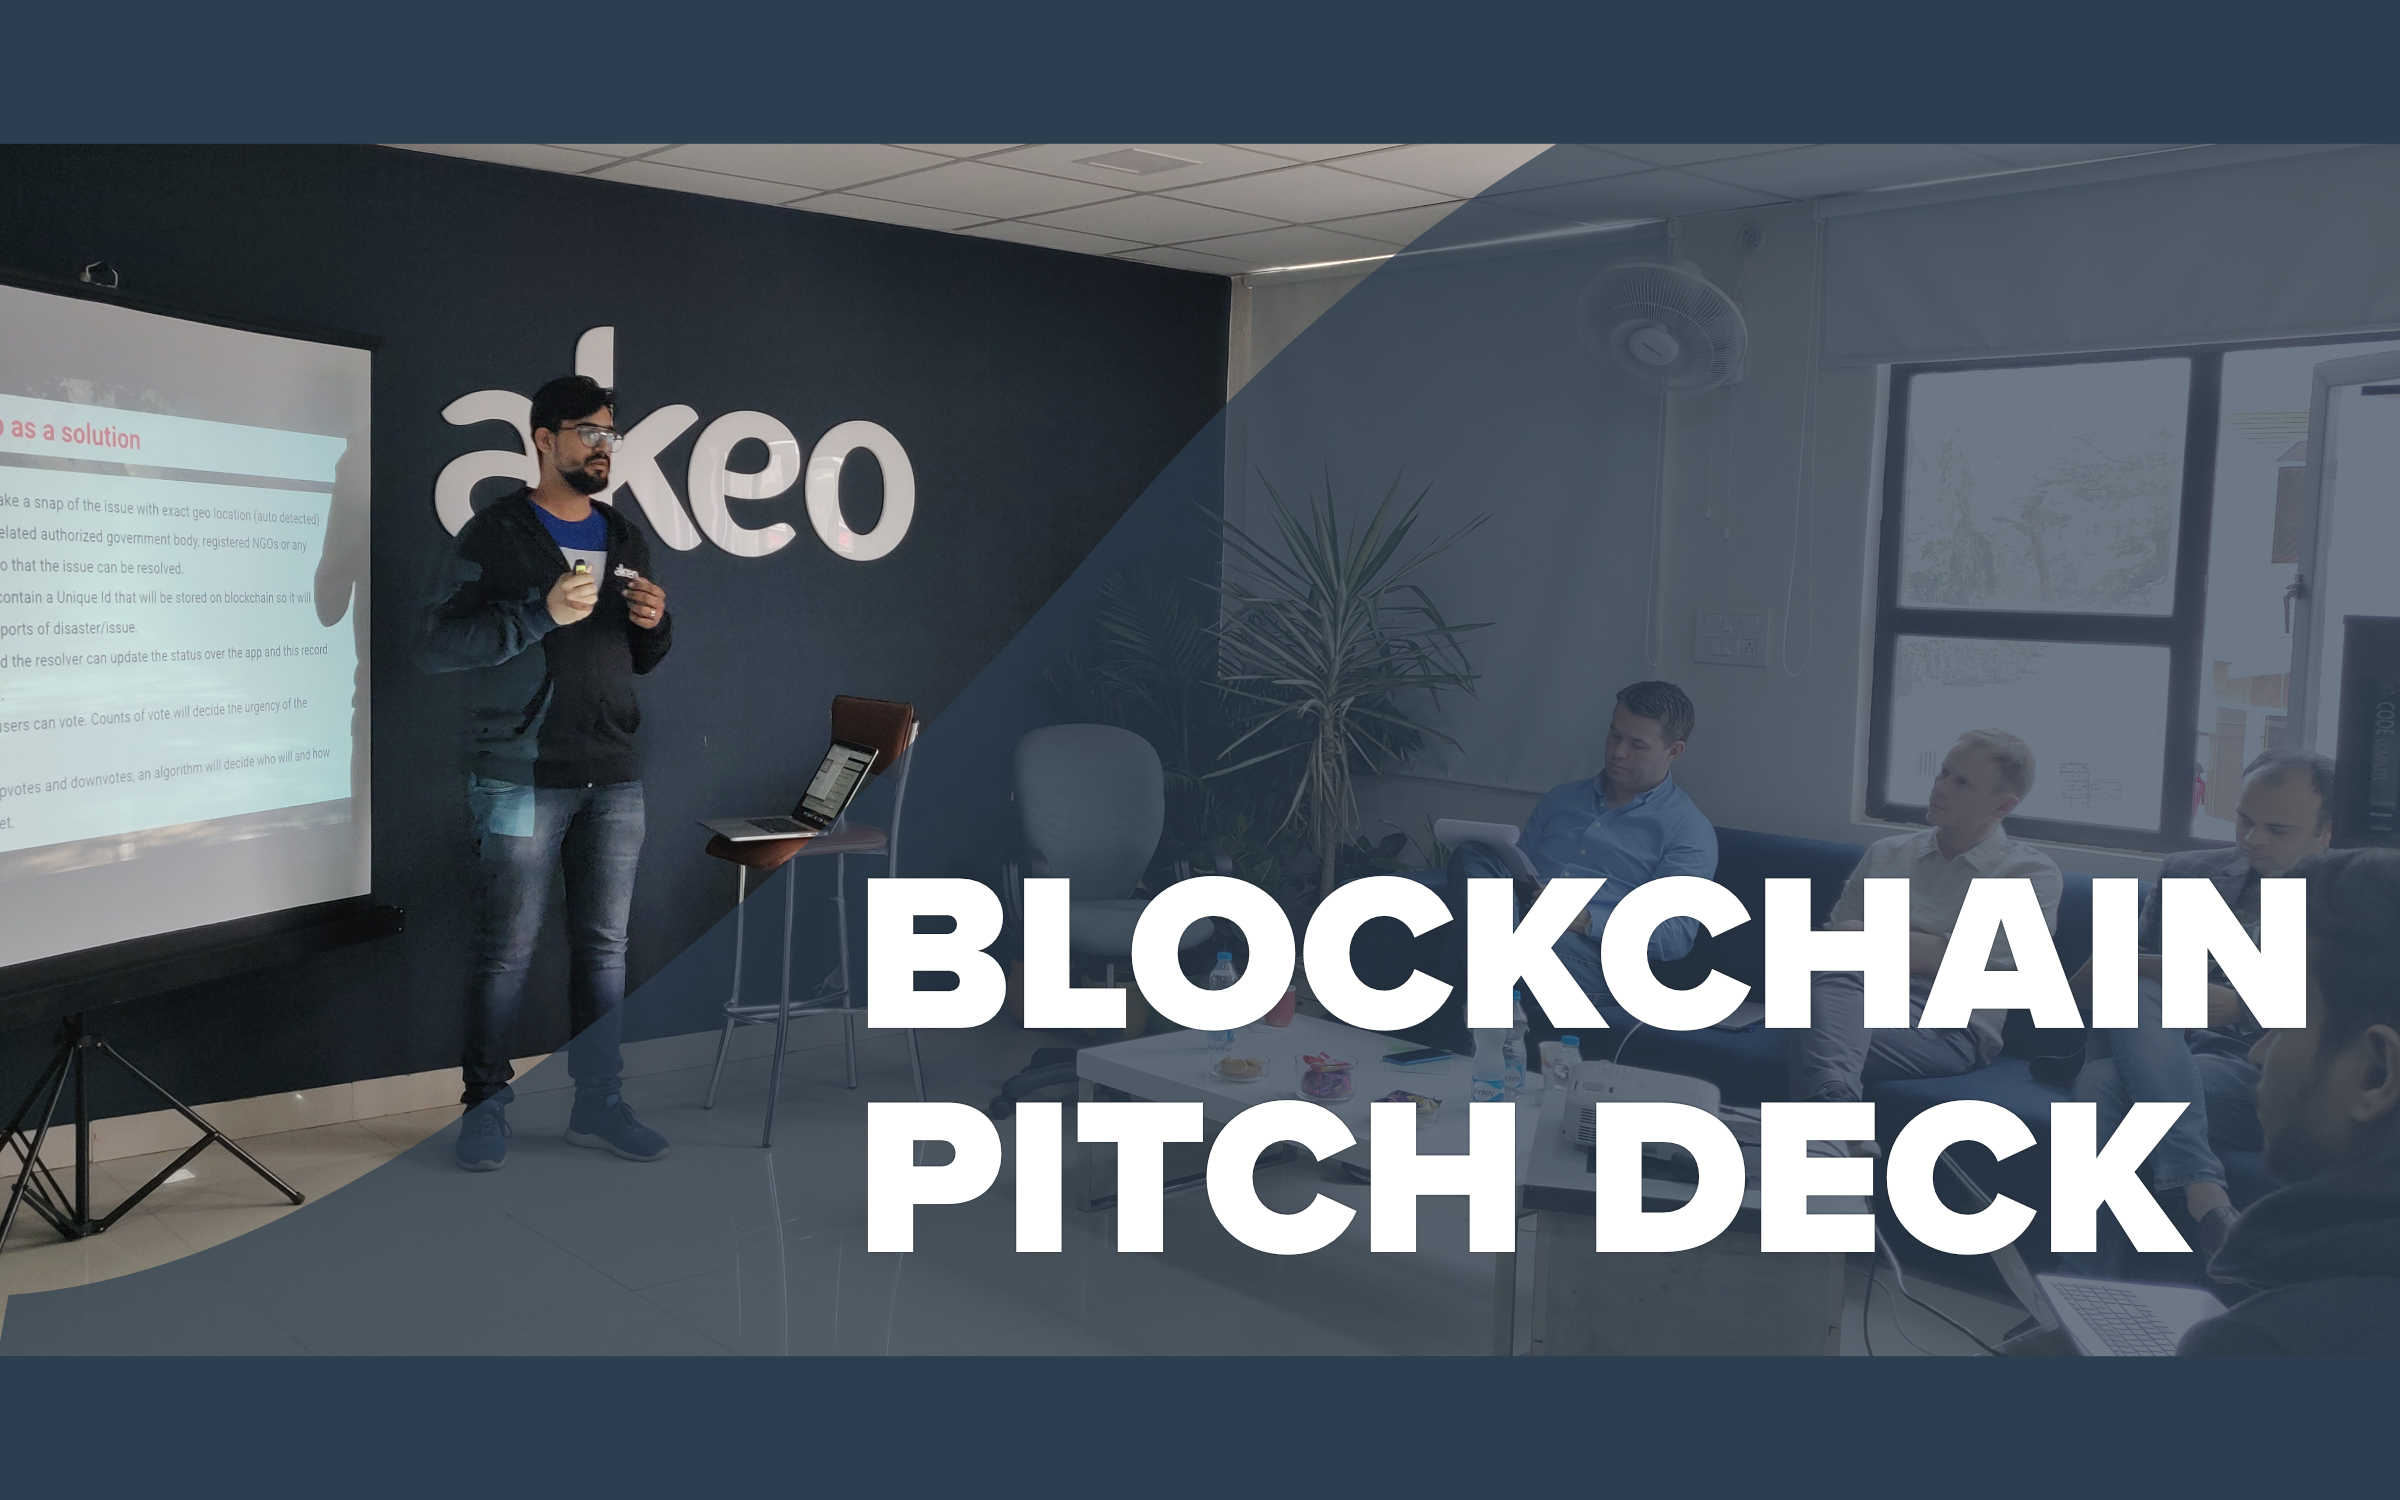 Akeo Blockchain Pitch Deck